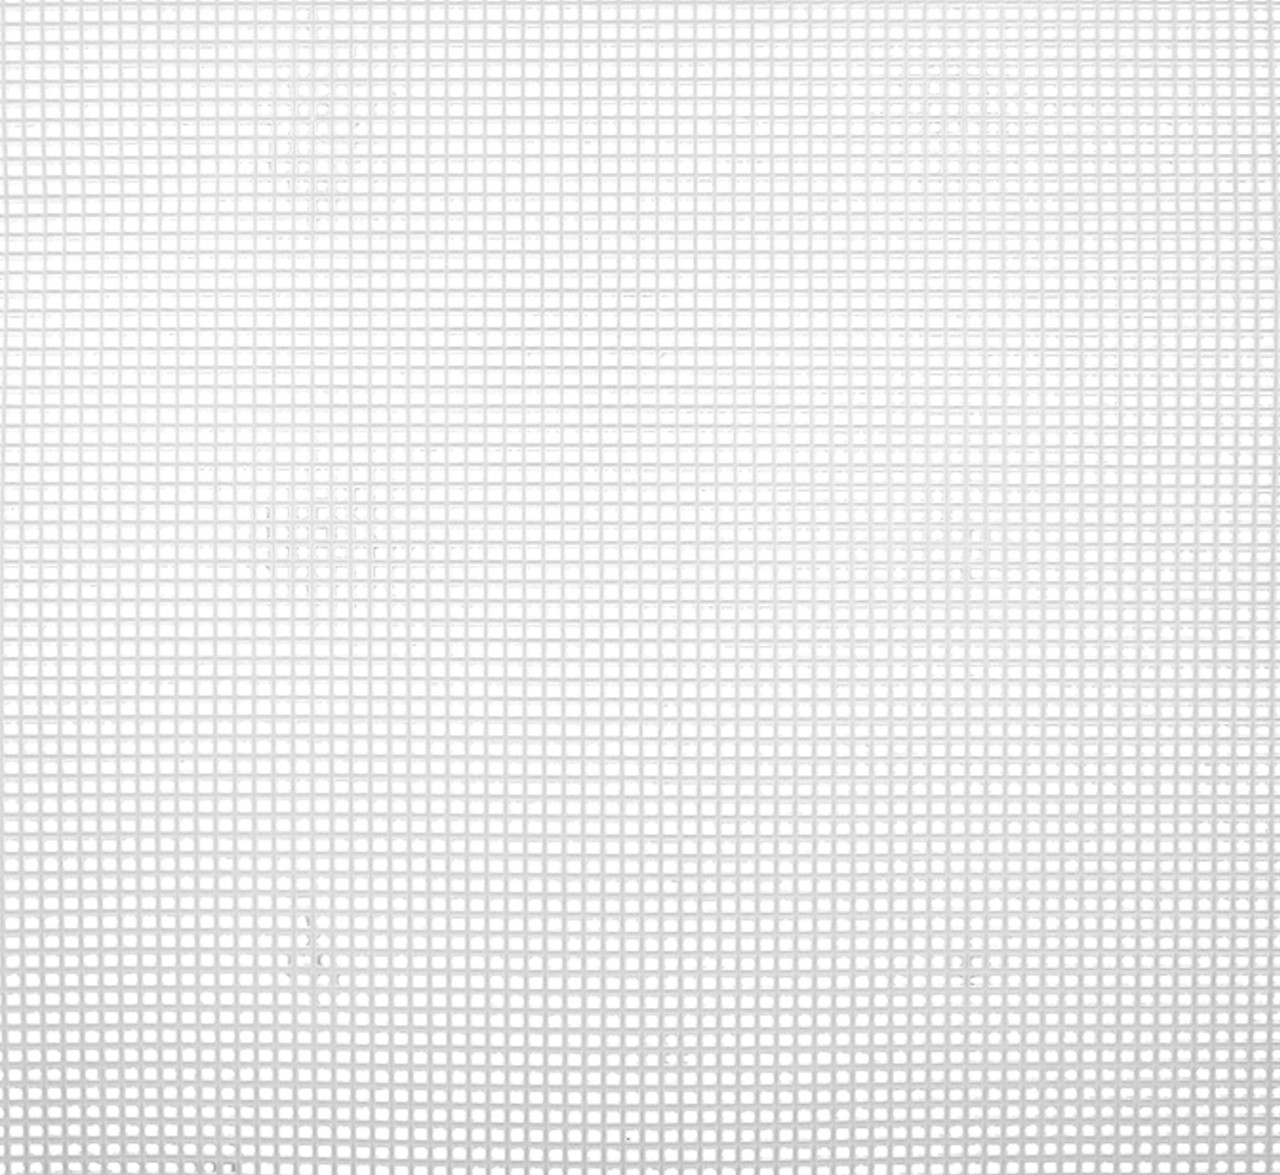 Janlynn - Clear Plastic Canvas 7 Count 10.5 x 13.5 inches